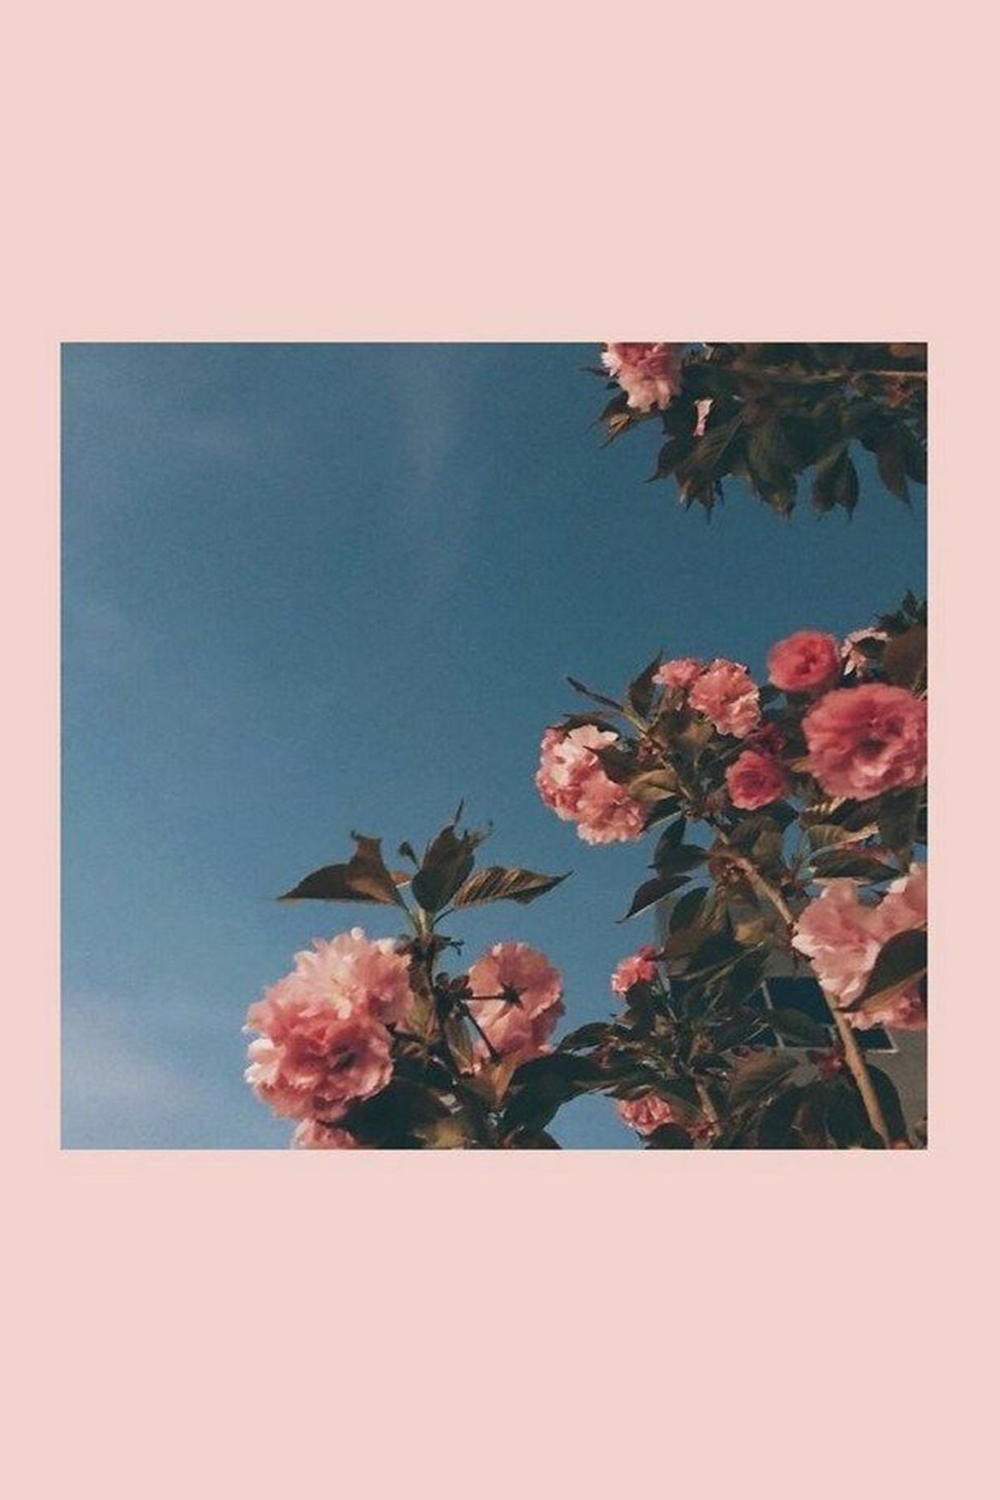 Aesthetic Wallpaper For Iphone Free Download In 2020 Aesthetic Iphone Wallpaper Aesthetic Wallpapers Ipad Wallpaper